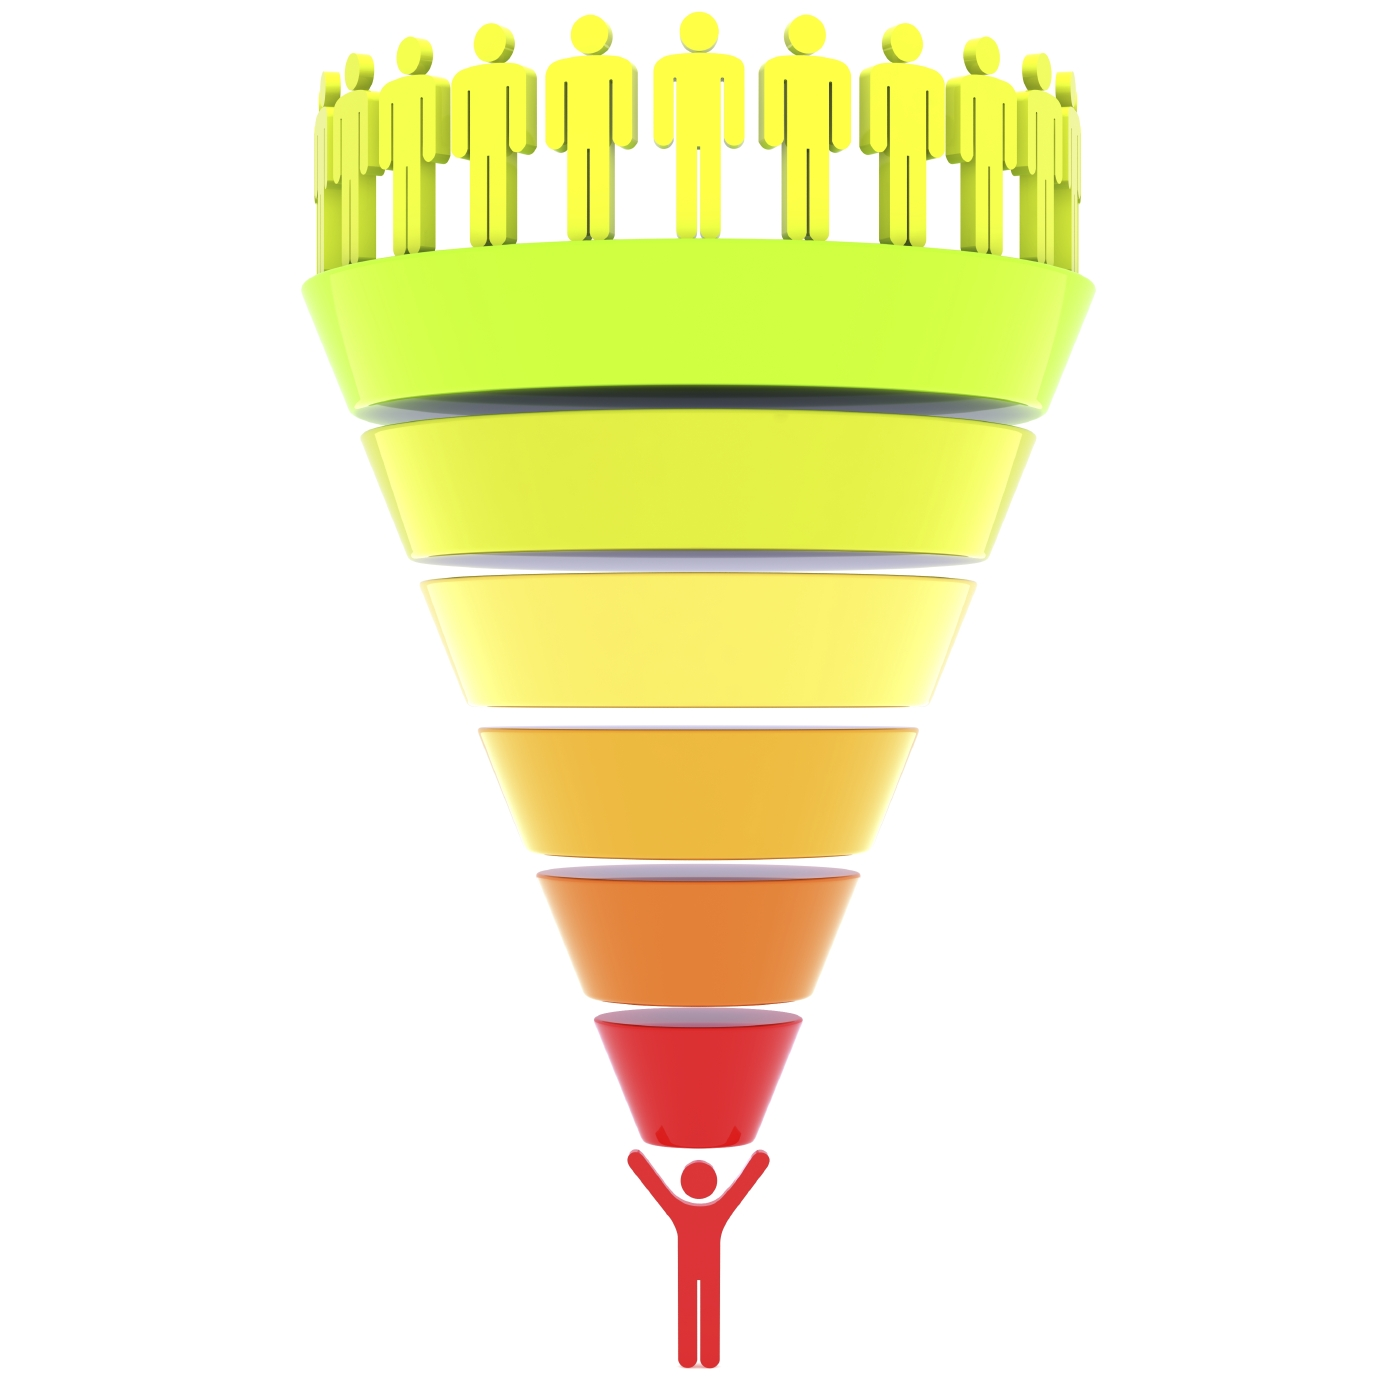 Sales funnel and lead nurturing